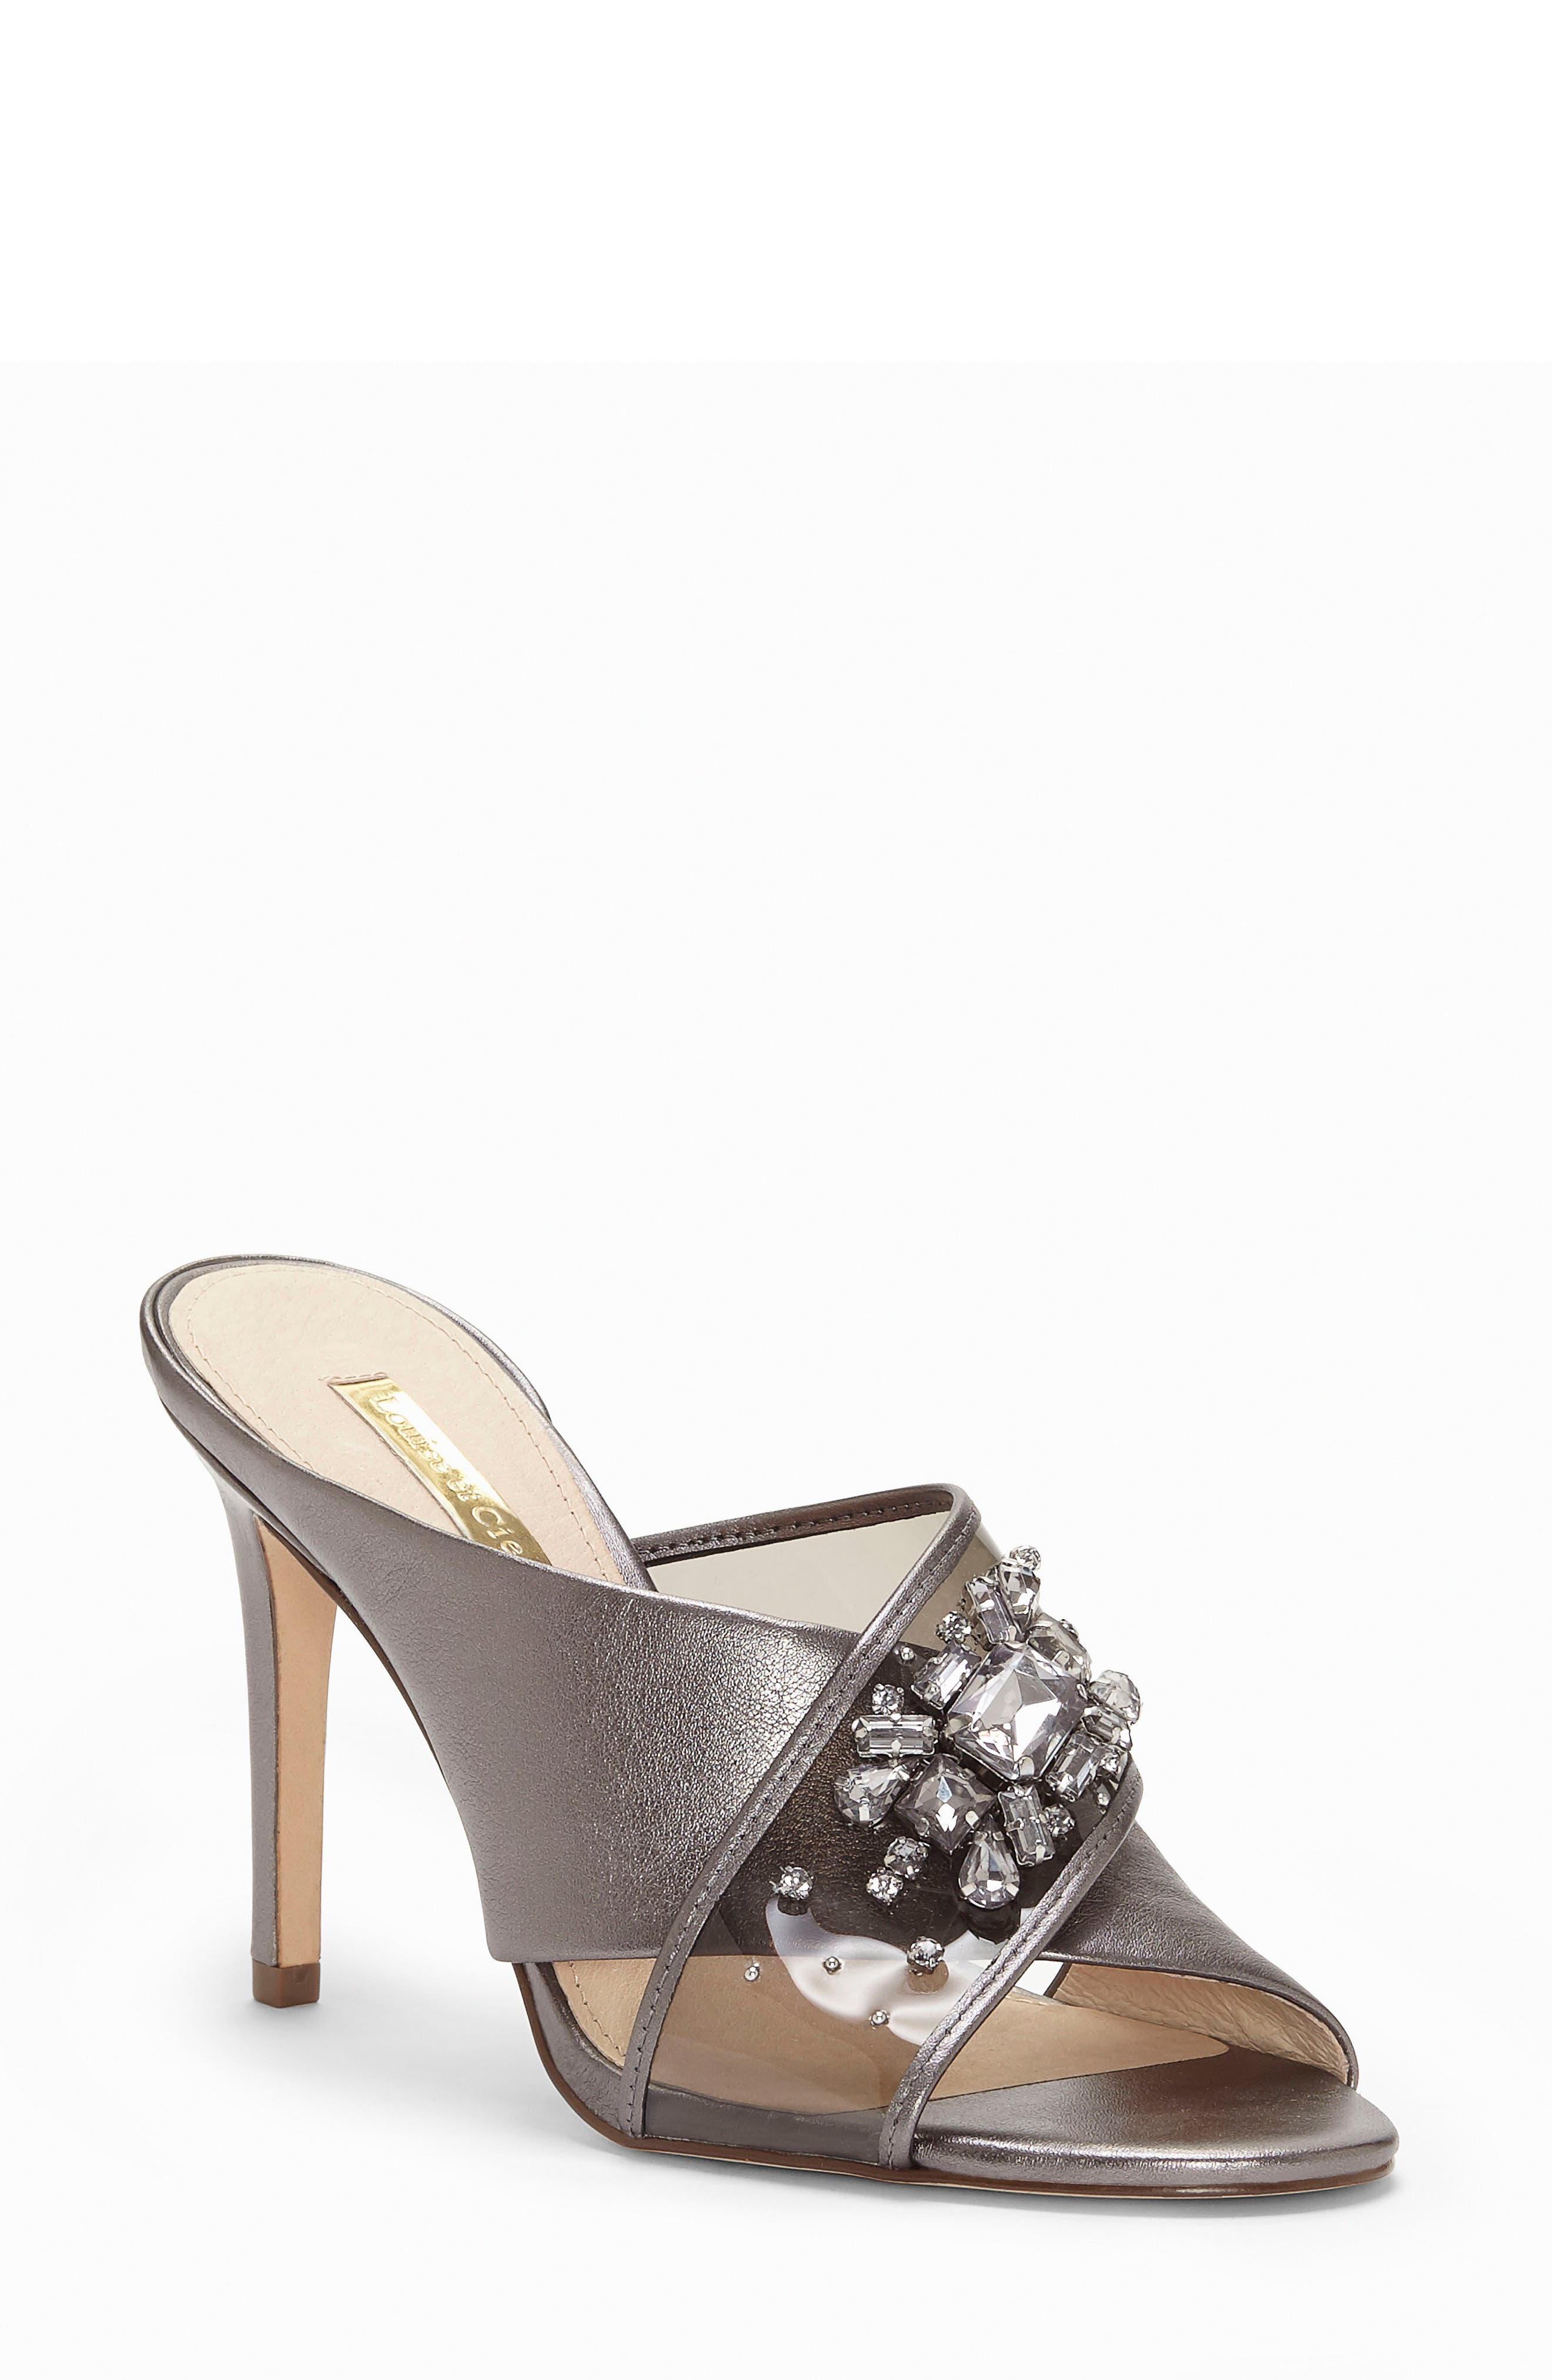 Louise Et Cie Hannety Embellished Sandal- Metallic